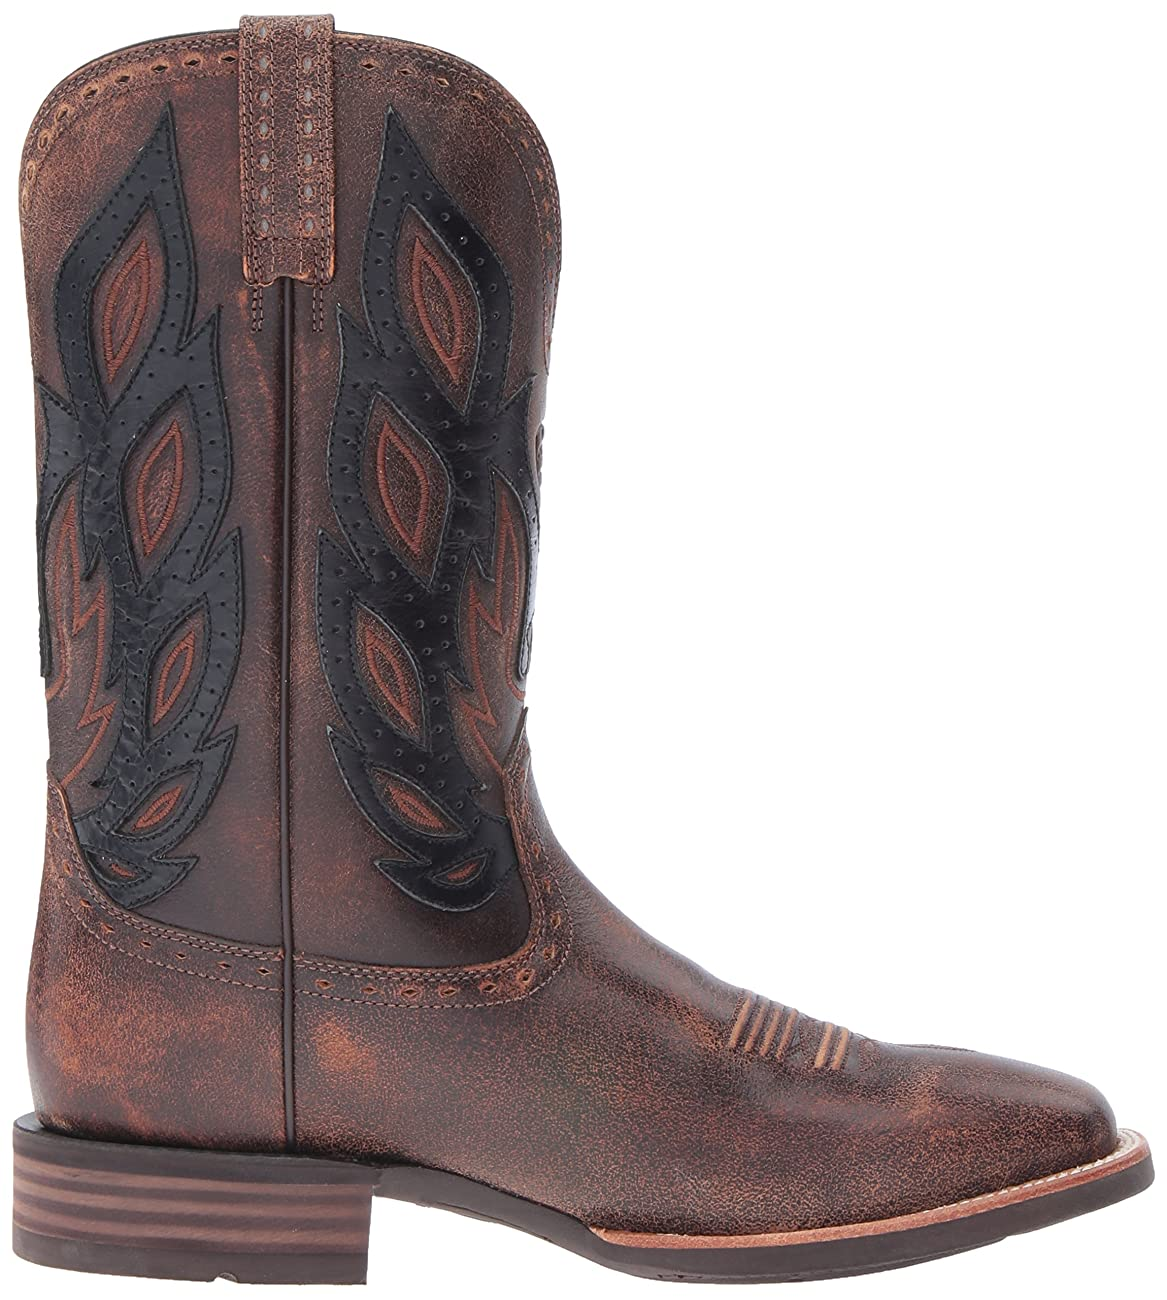 Ariat Men's Nighthawk Western Cowboy Boot 5